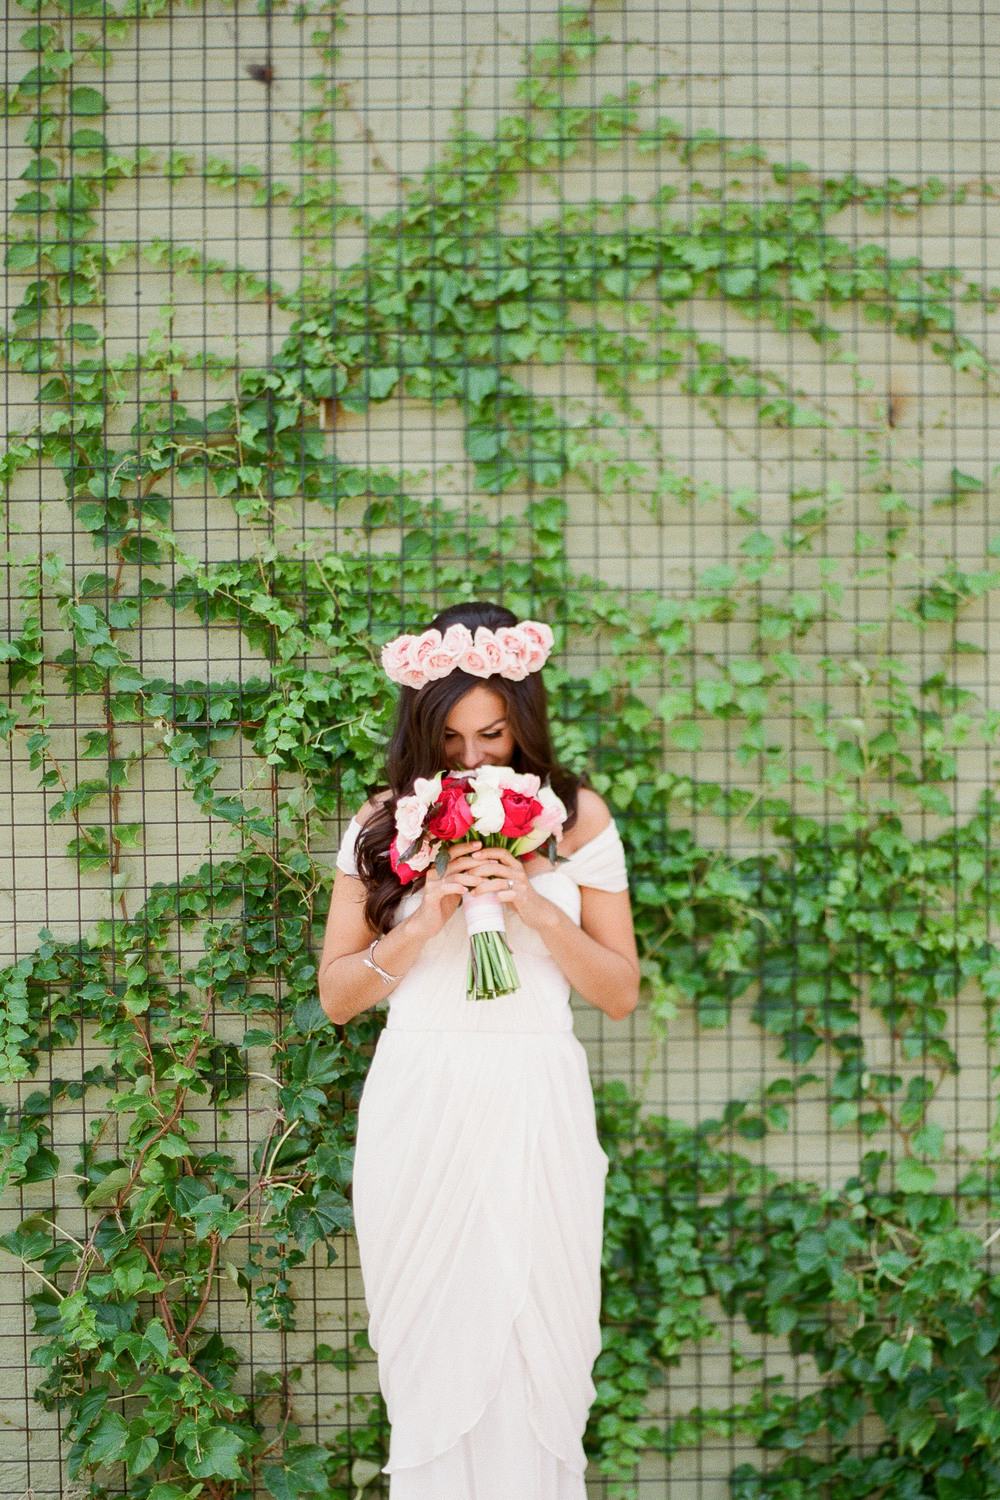 the_green_building_wedding_brklyn view photography_hanaluluco_5.jpg